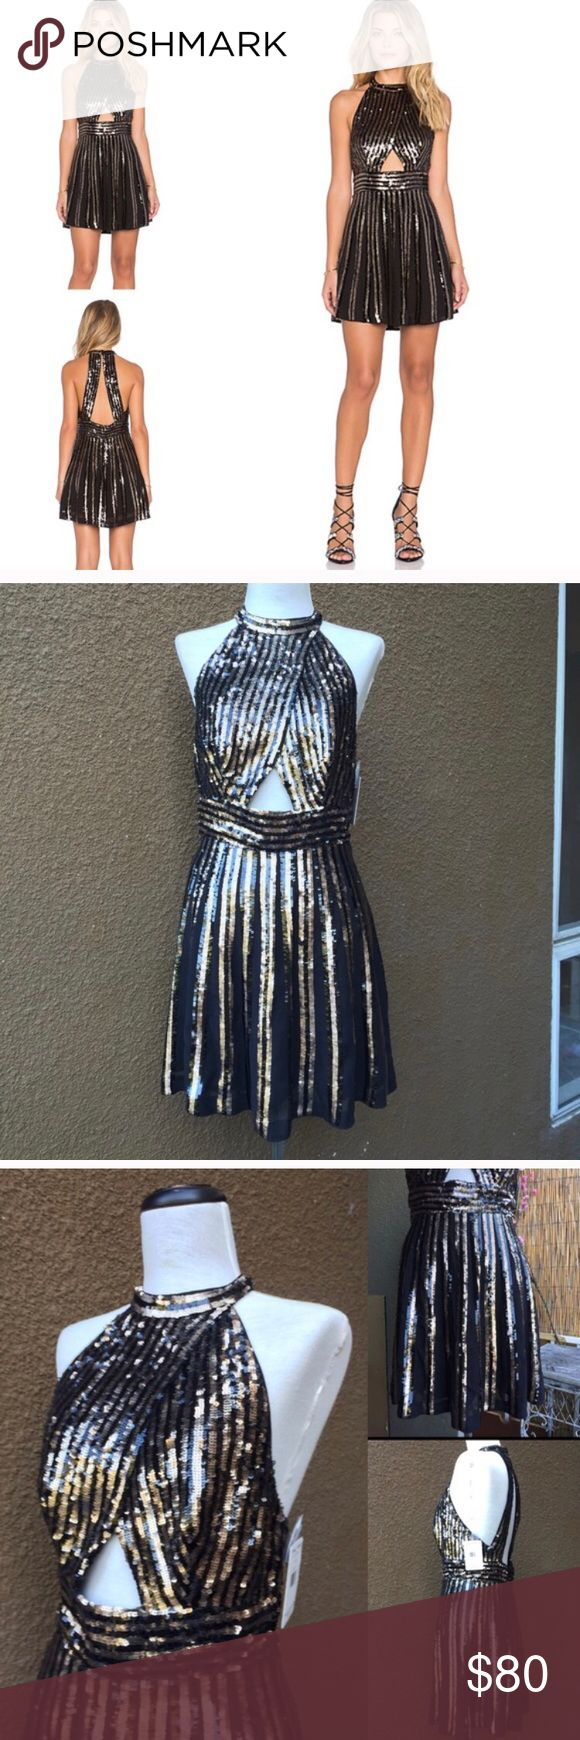 Free People Black Striped Sequin Mini Dress Reposh after wearing once for New Years! Does not have tags anymore! Purchased for $105! Size 6! Let me know if you have any questions! Black and gold Free People Sequin dress retails for $350! Free People Dresses Mini